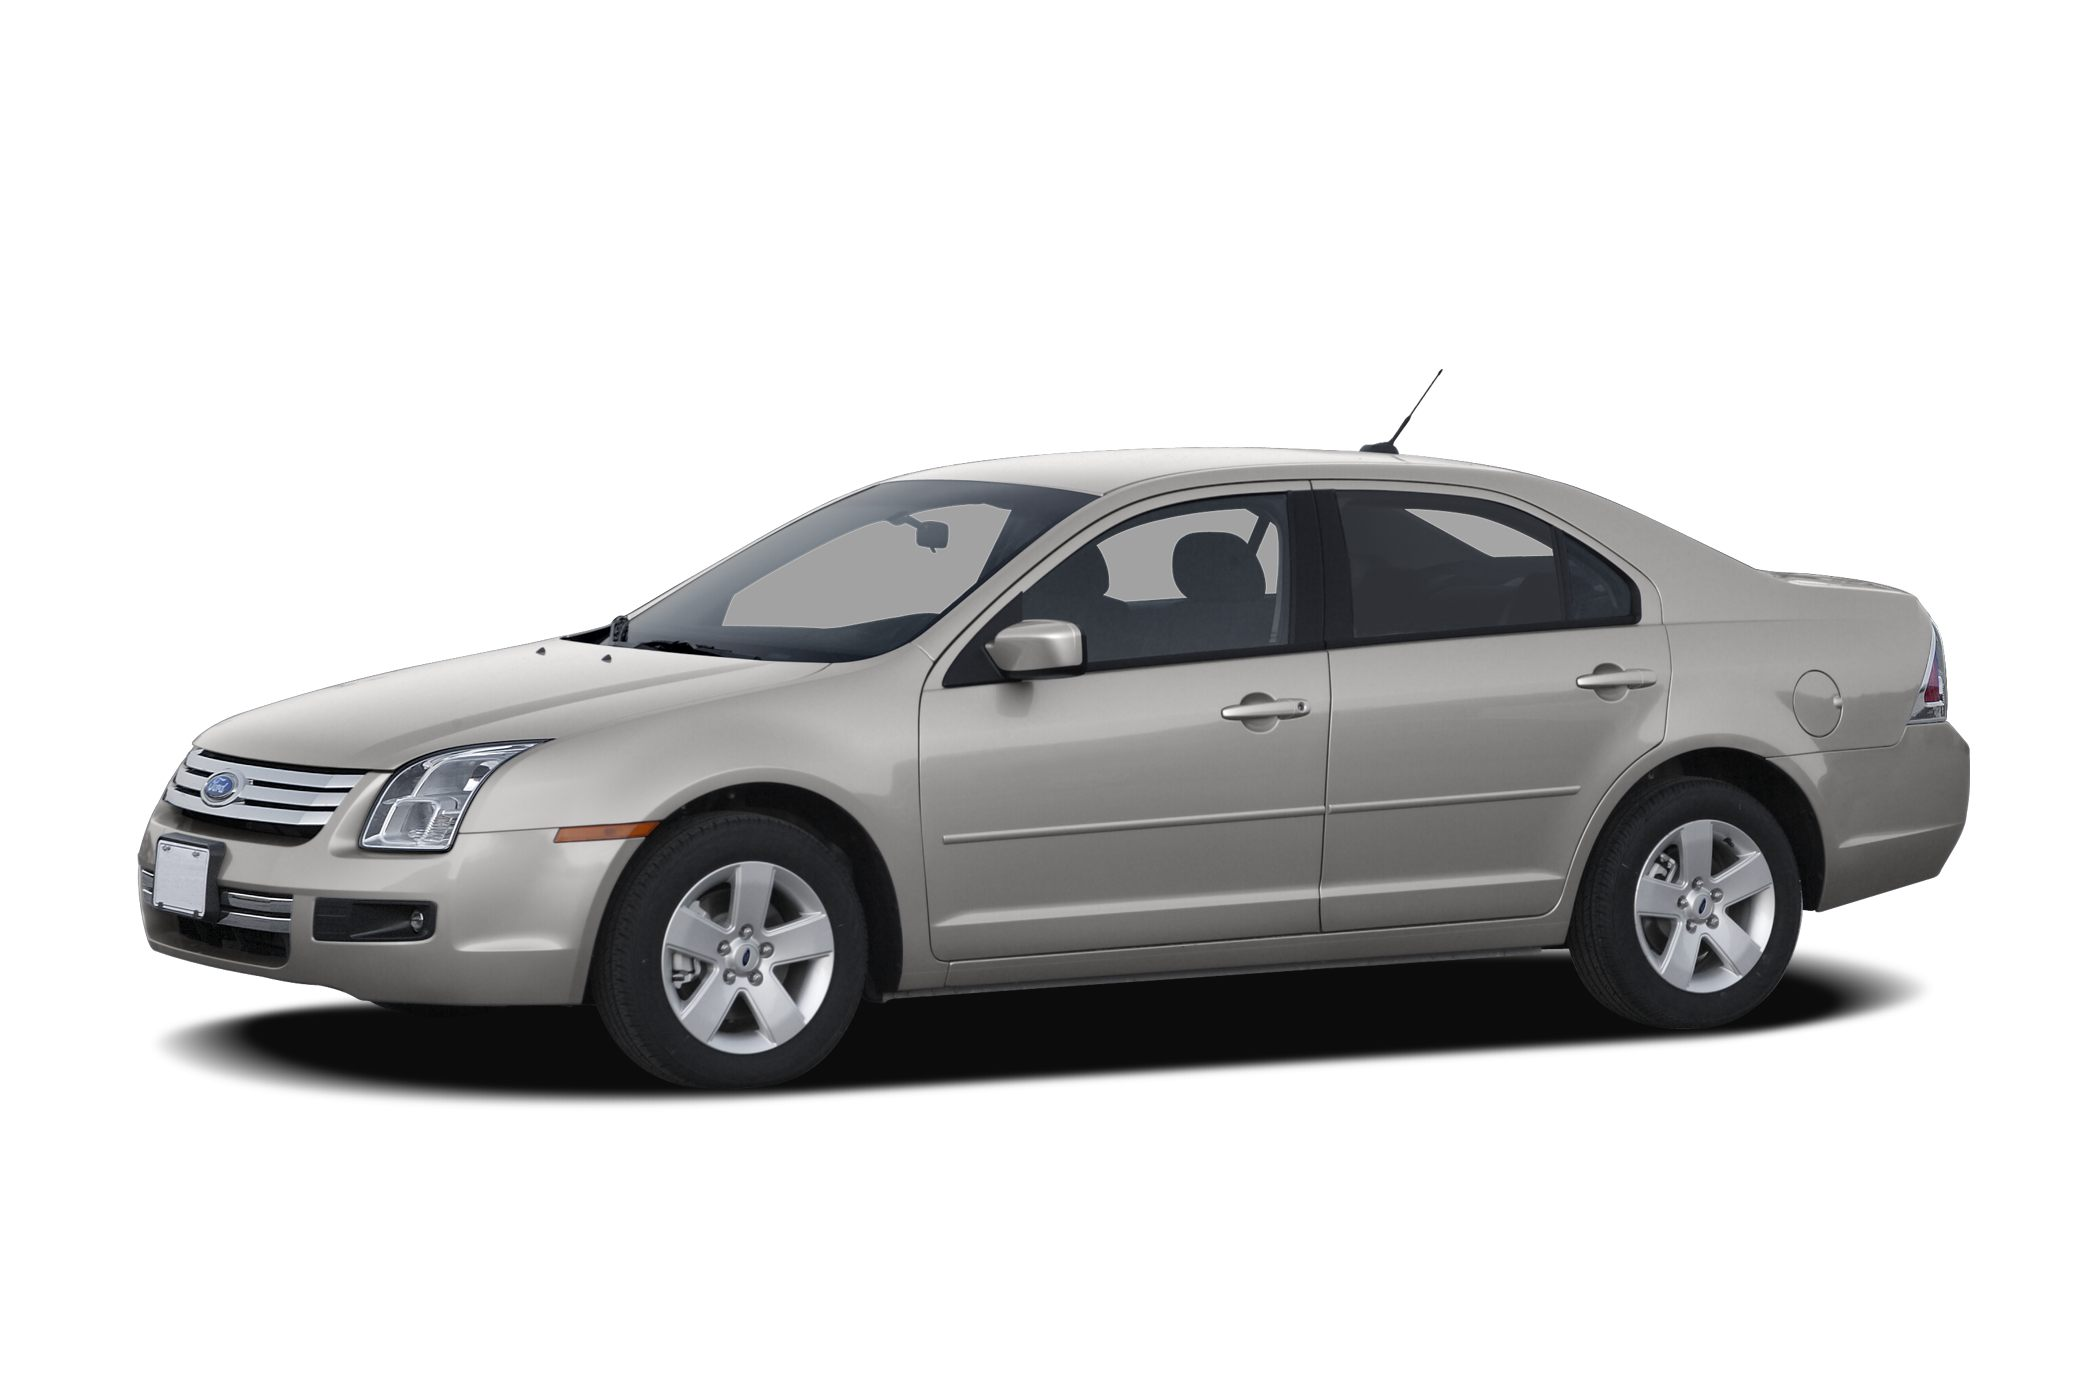 Cars for Sale by Bank Lovely Used Cars for Sale at Auto Exotica In Red Bank Nj Less Than 10 000